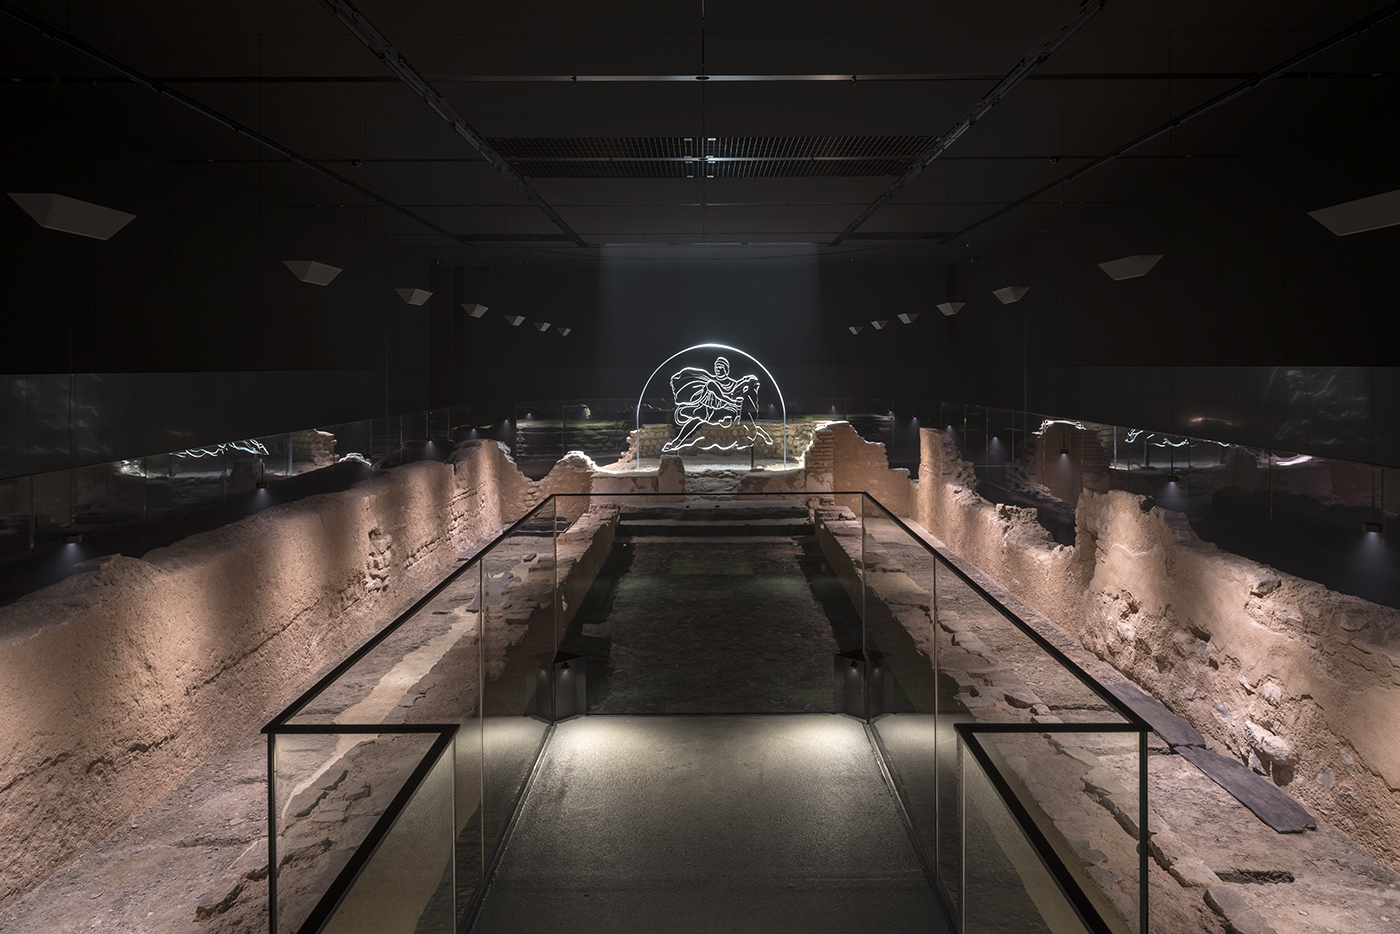 London Mithraeum is a faithful reconstruction of the Temple of Mithras as it stood on this site nearly two thousand years ago